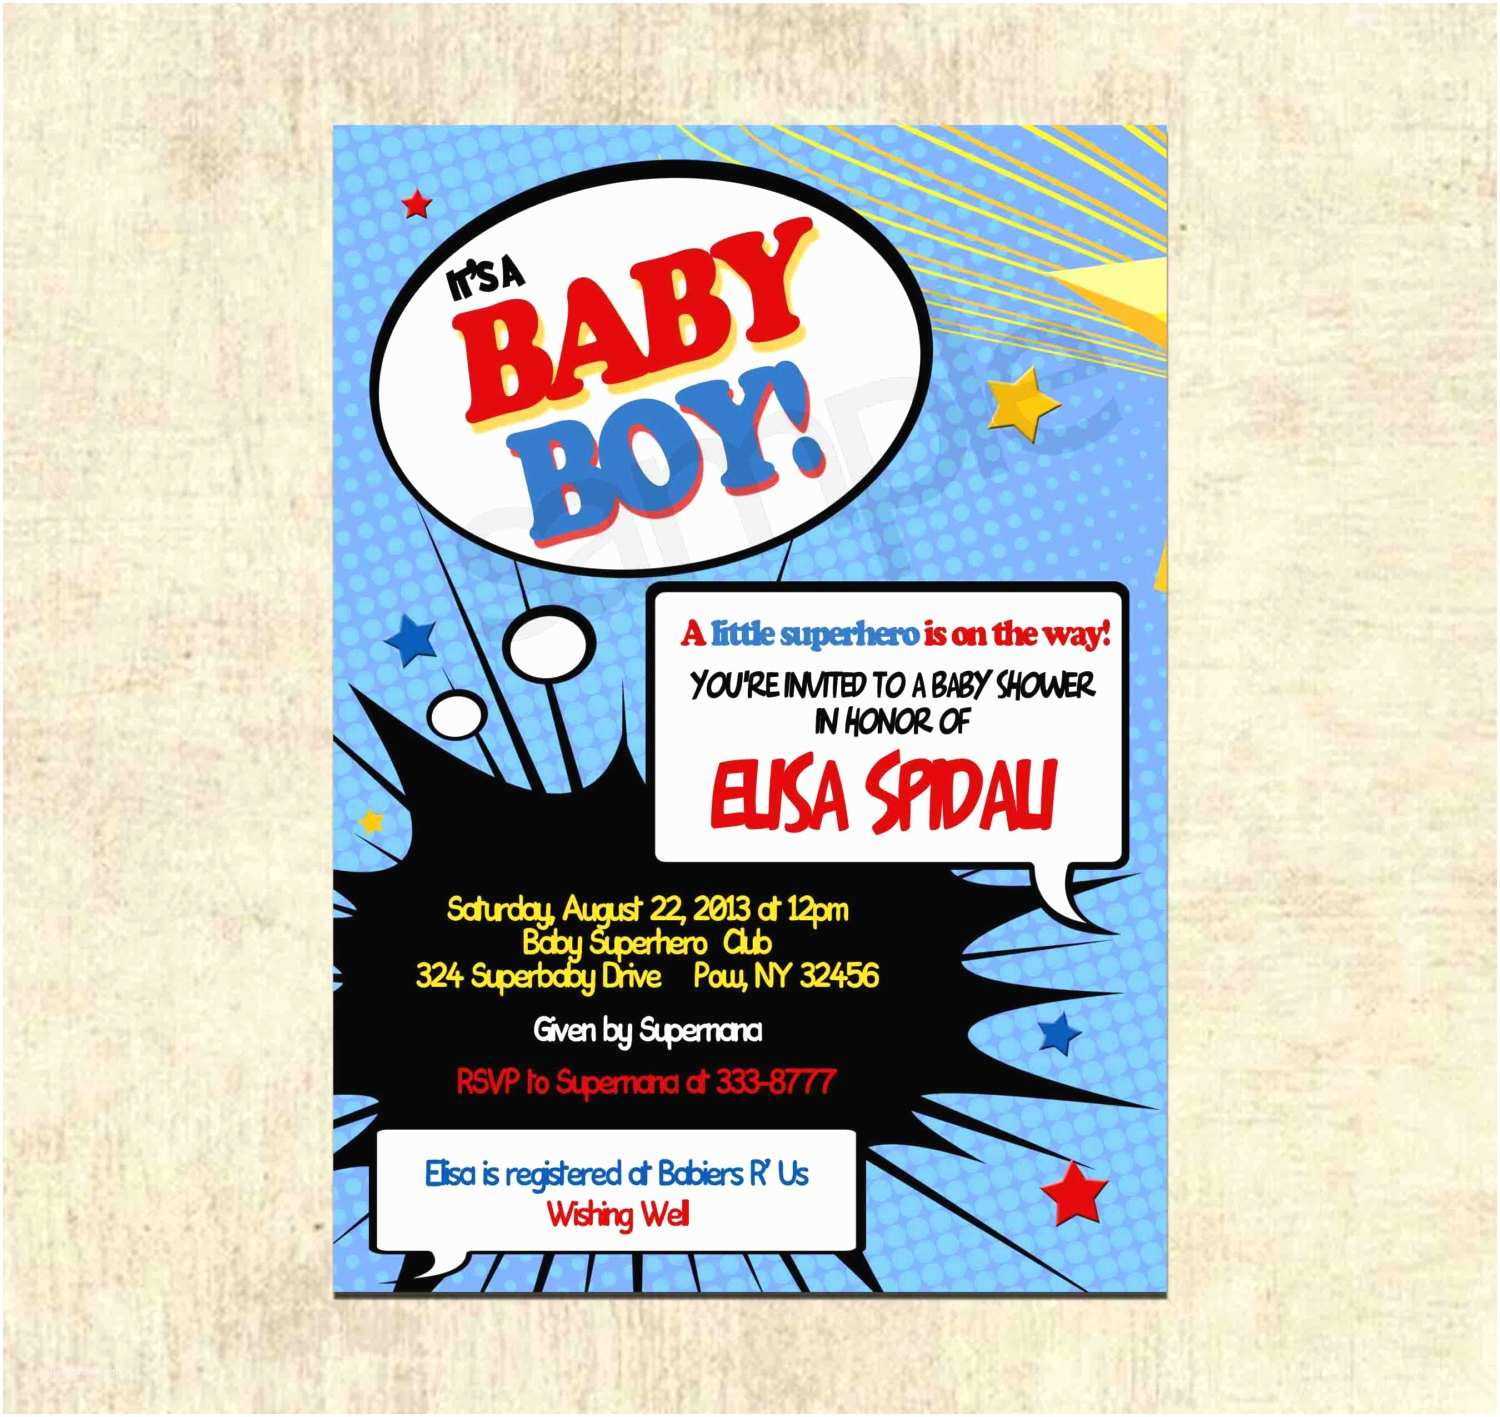 Superhero Baby Shower Invitations Baby Shower Invitation Superhero Baby Shower by theprintfairy